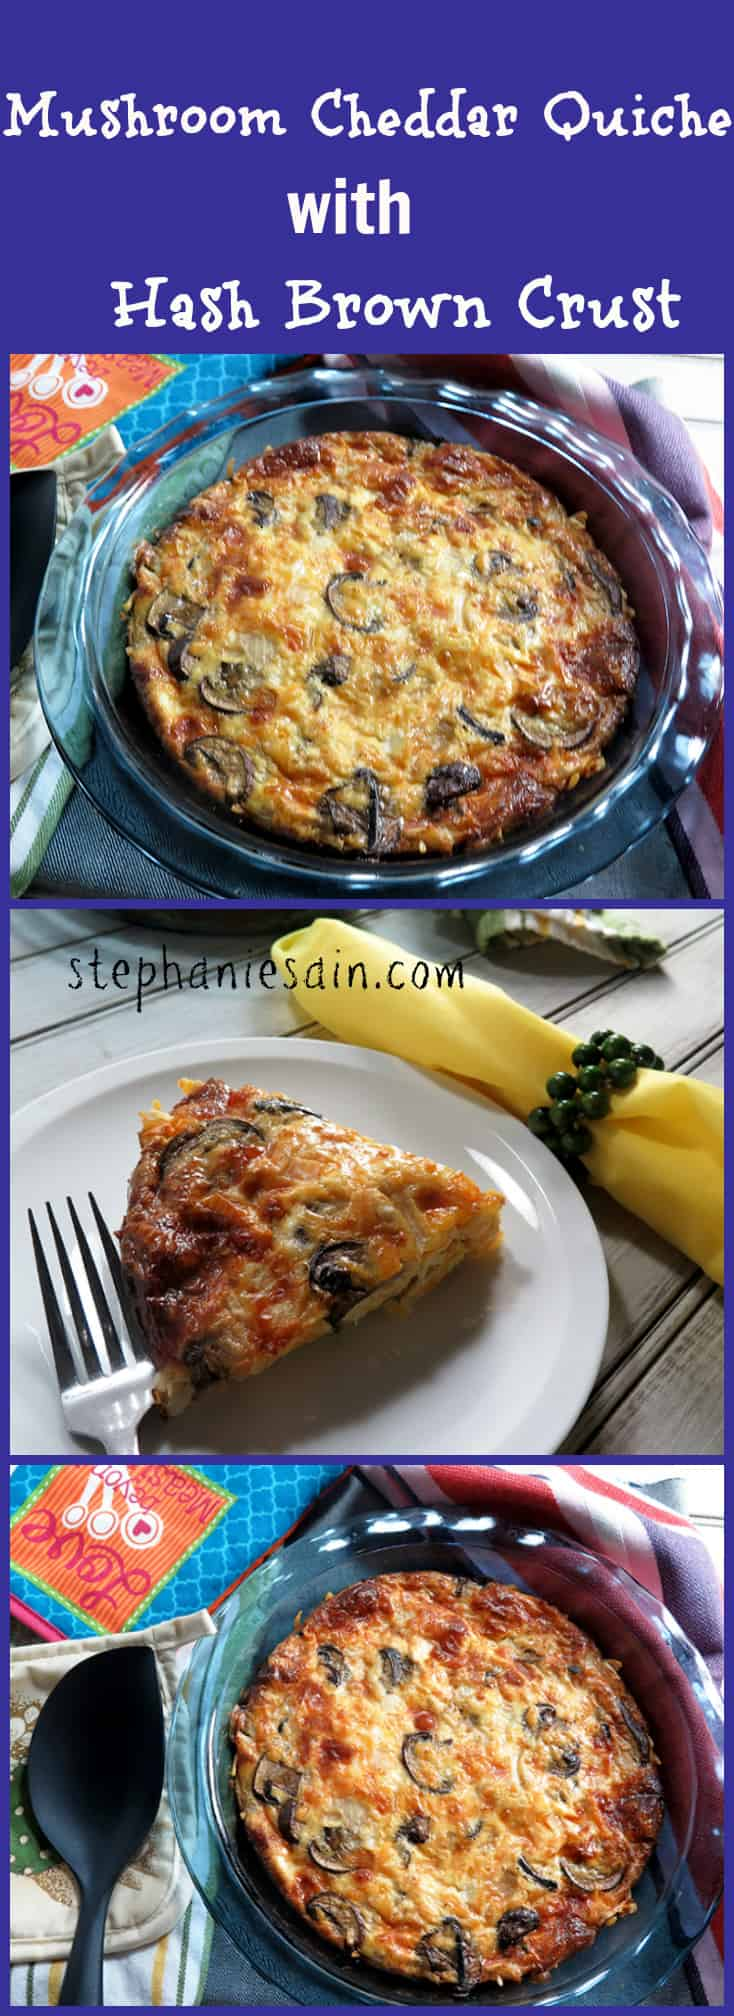 Mushroom Cheddar Quiche with Hash brown Crust is a tasty quiche with a naturally gluten free crust made from potatoes. Perfect addition for brunch or dinner. Vegetarian and Gluten Free.